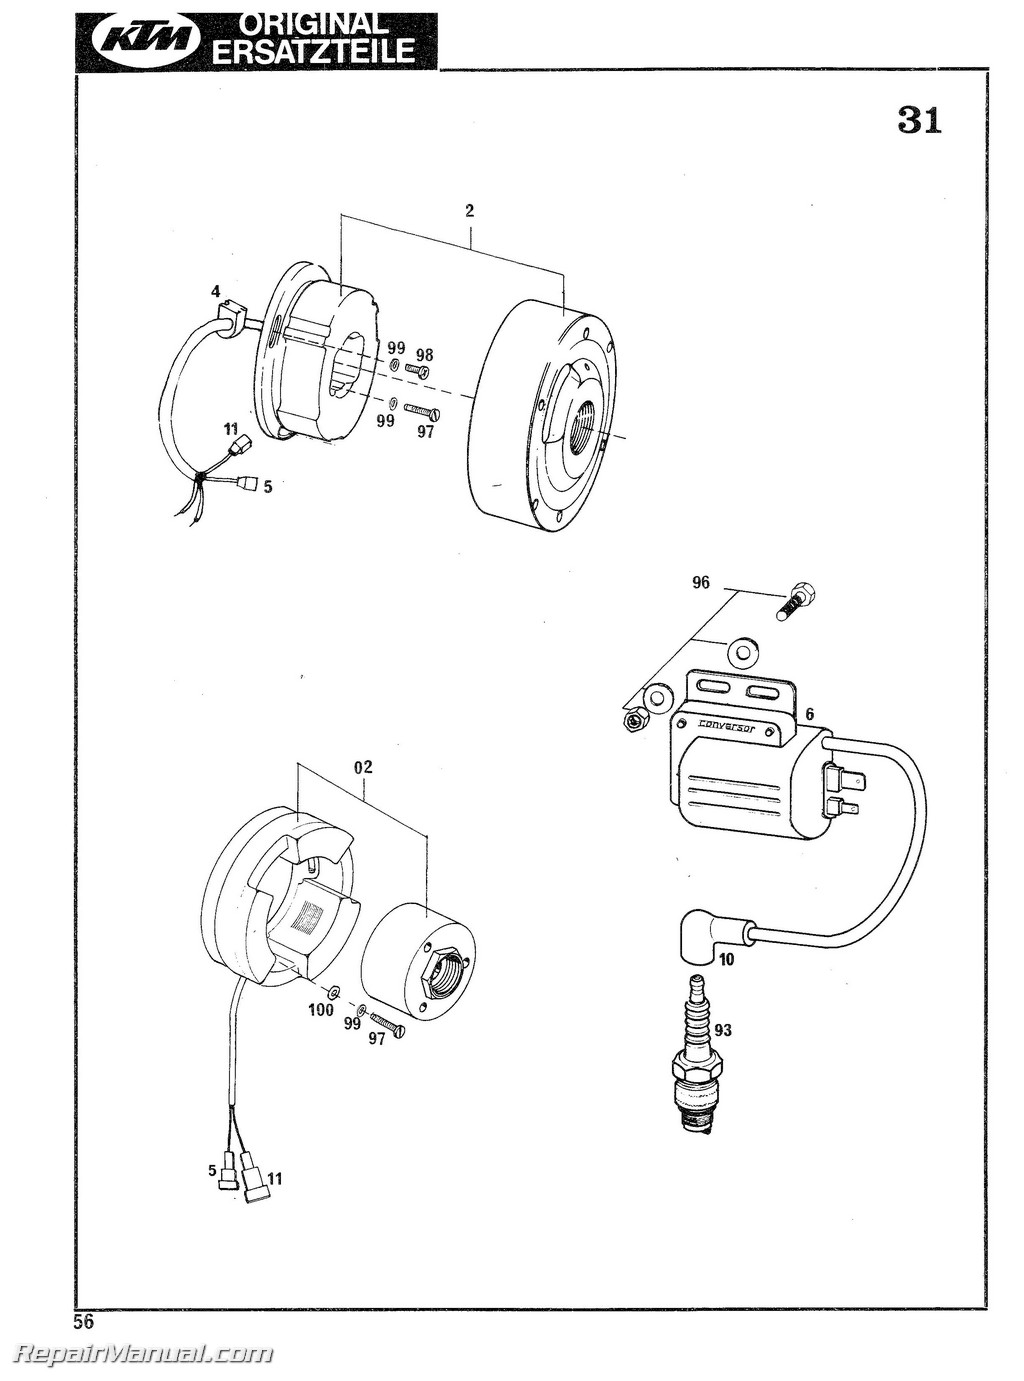 hight resolution of 1978 1979 ktm 125 175 240 250 340 400 motorcycle engine spare parts manual